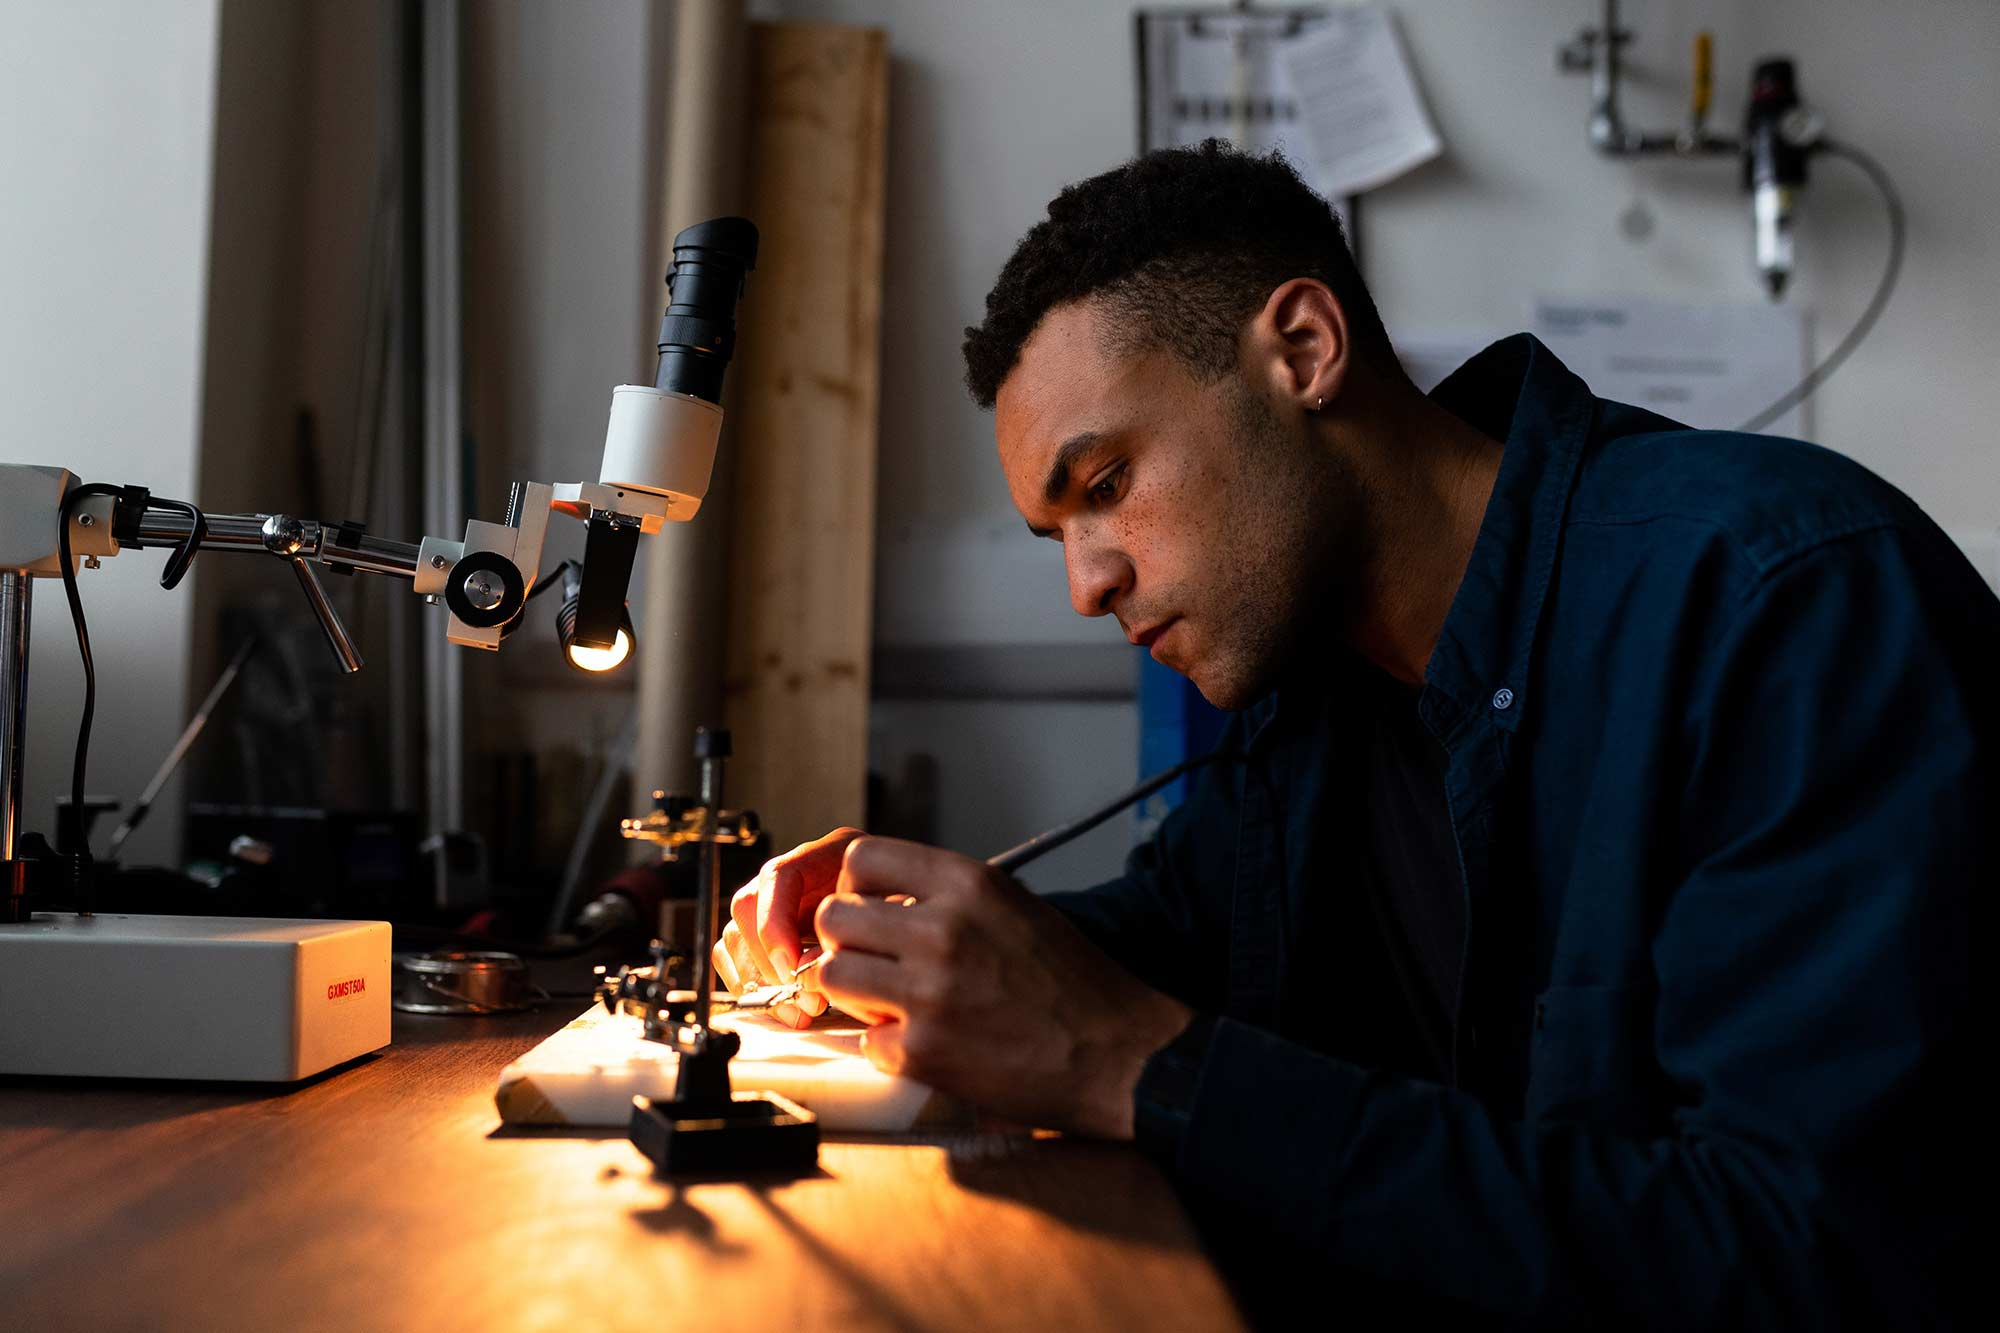 Man working with soldering kit